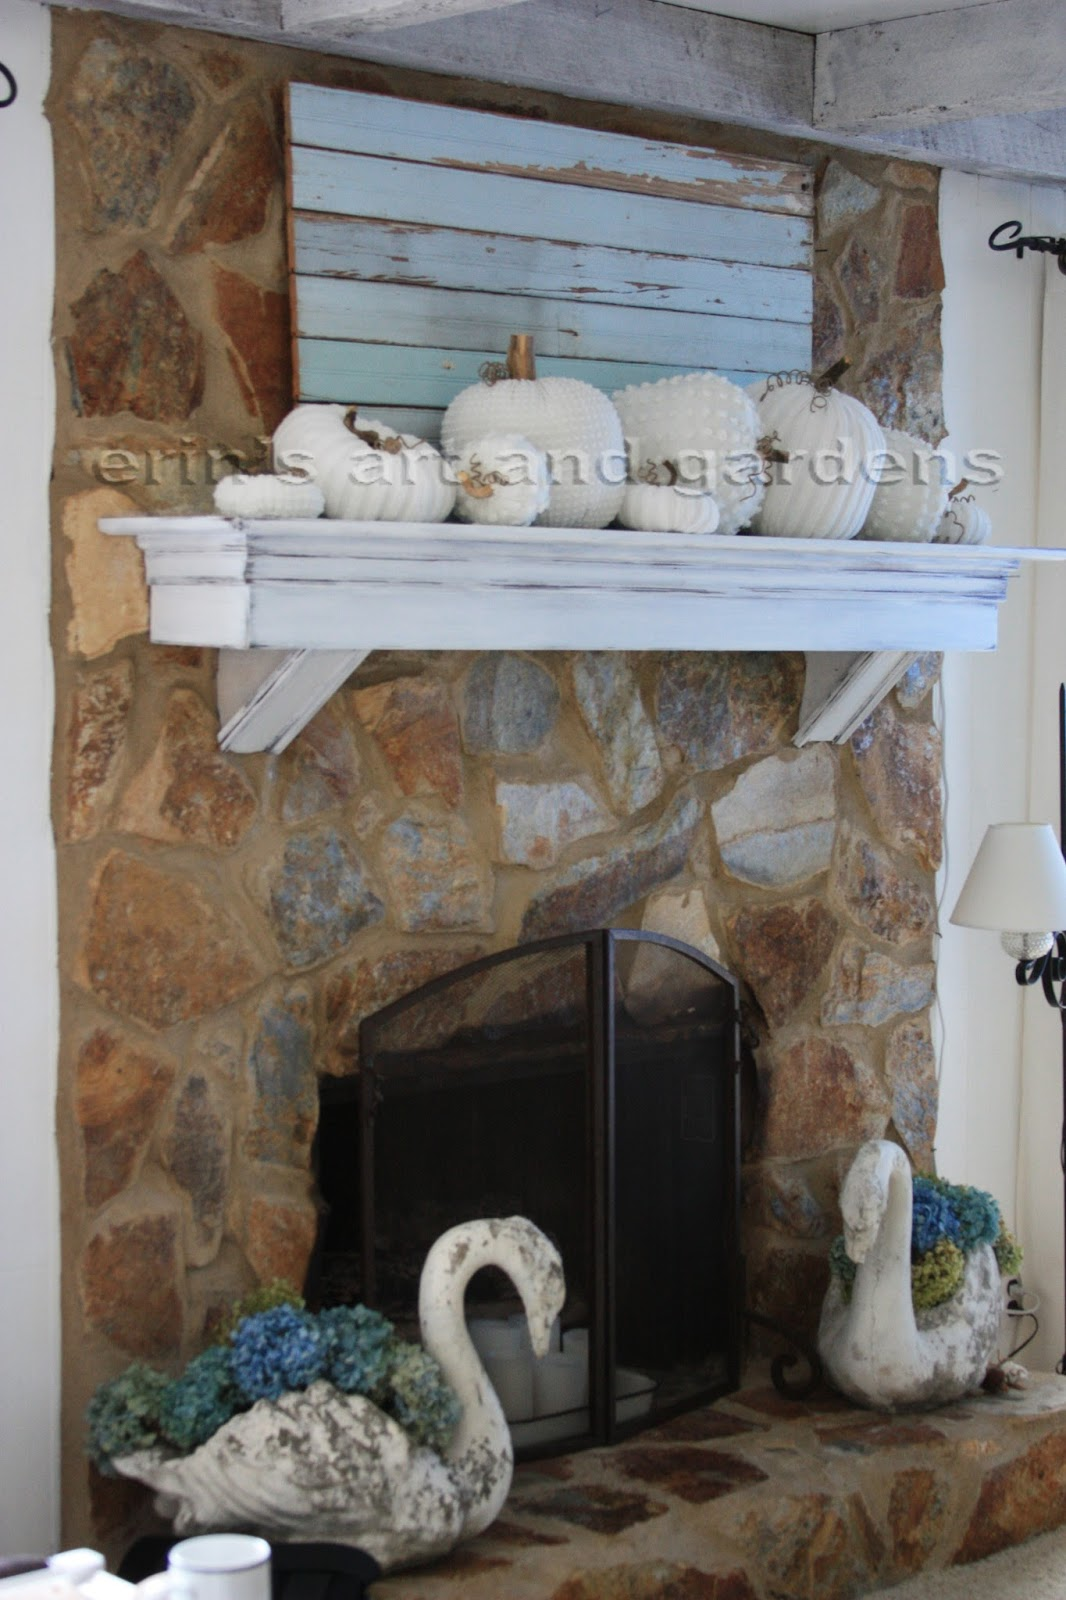 Erin S Art And Gardens Chalk Painted 1970 S Stone Fireplace